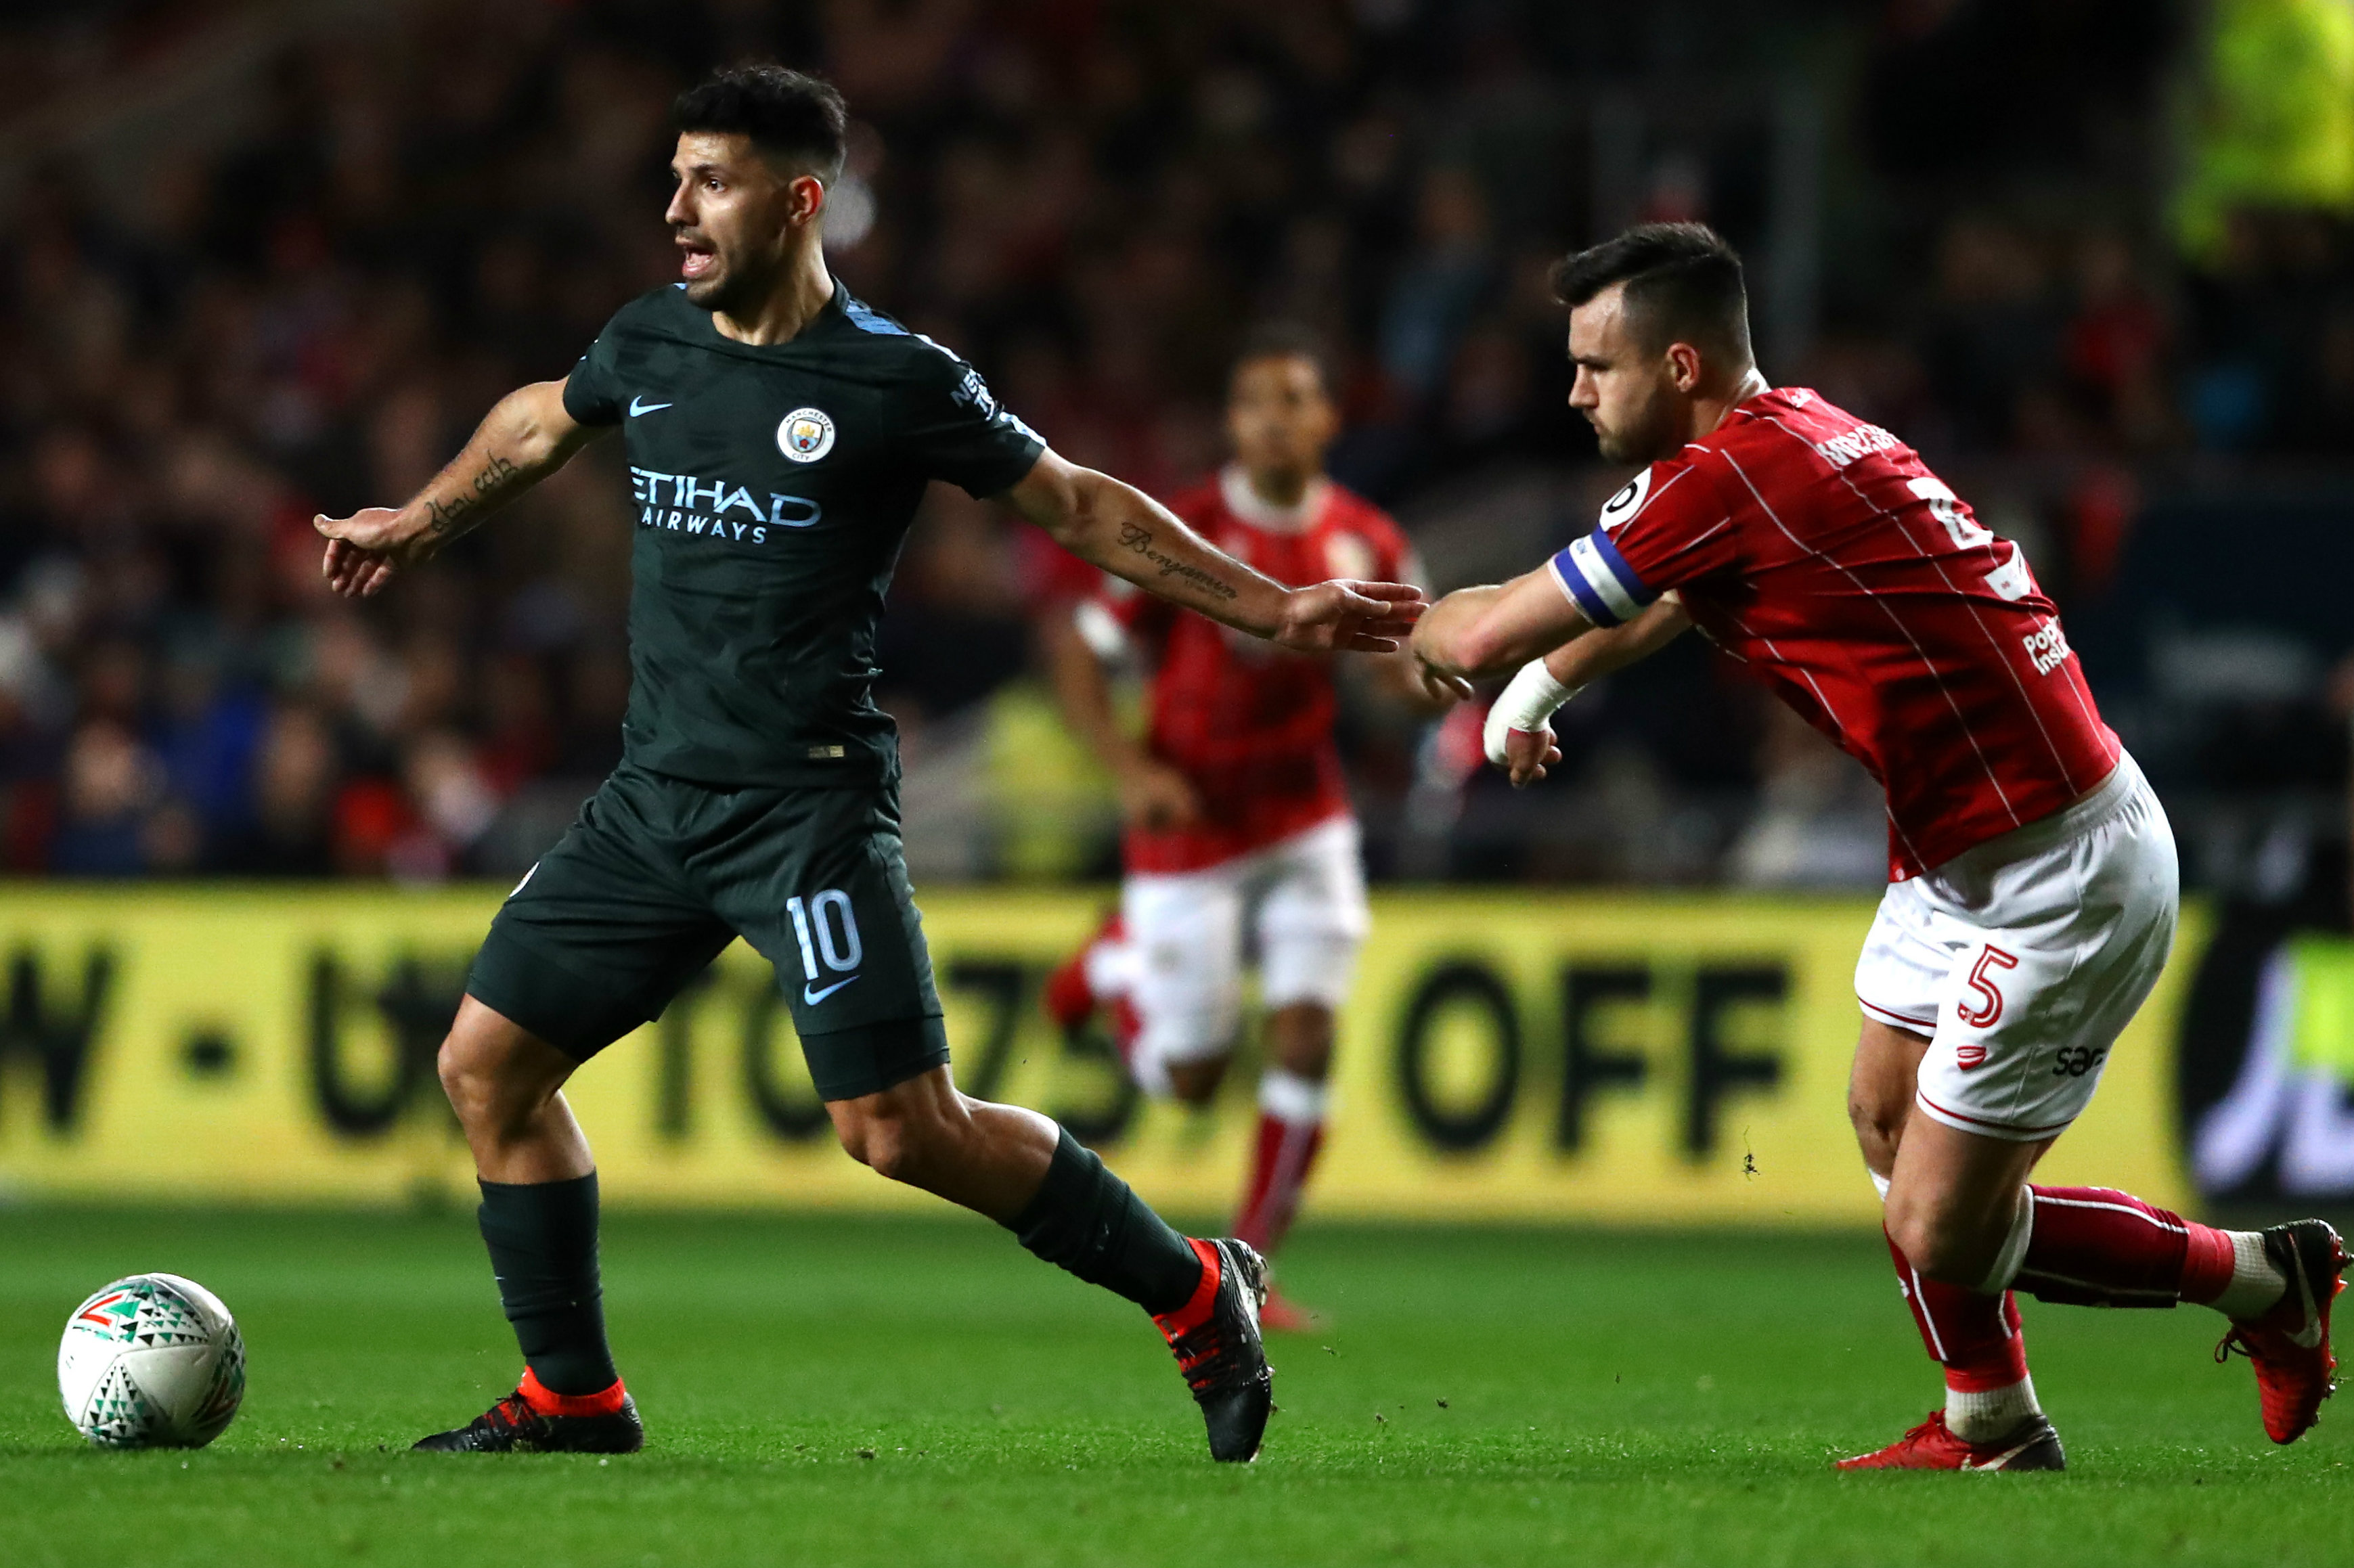 Bailey Wright puts the pressure on City star Sergio Aguero.